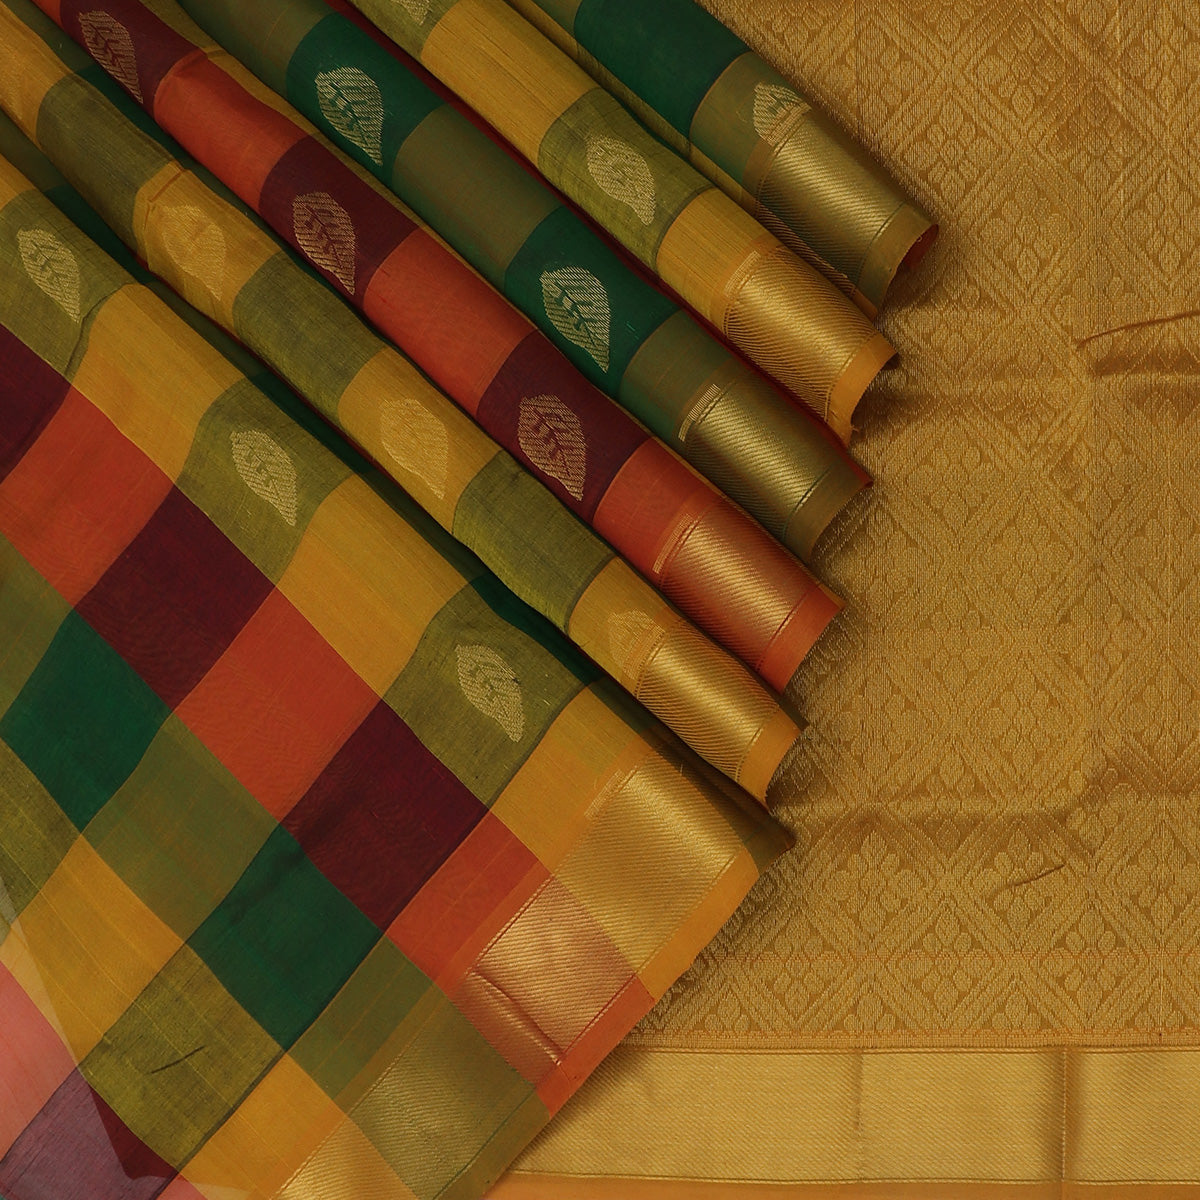 Silk Cotton Seree Paazhum Pazhamum Checks MultiColor with Leaf Buttas and Zari border